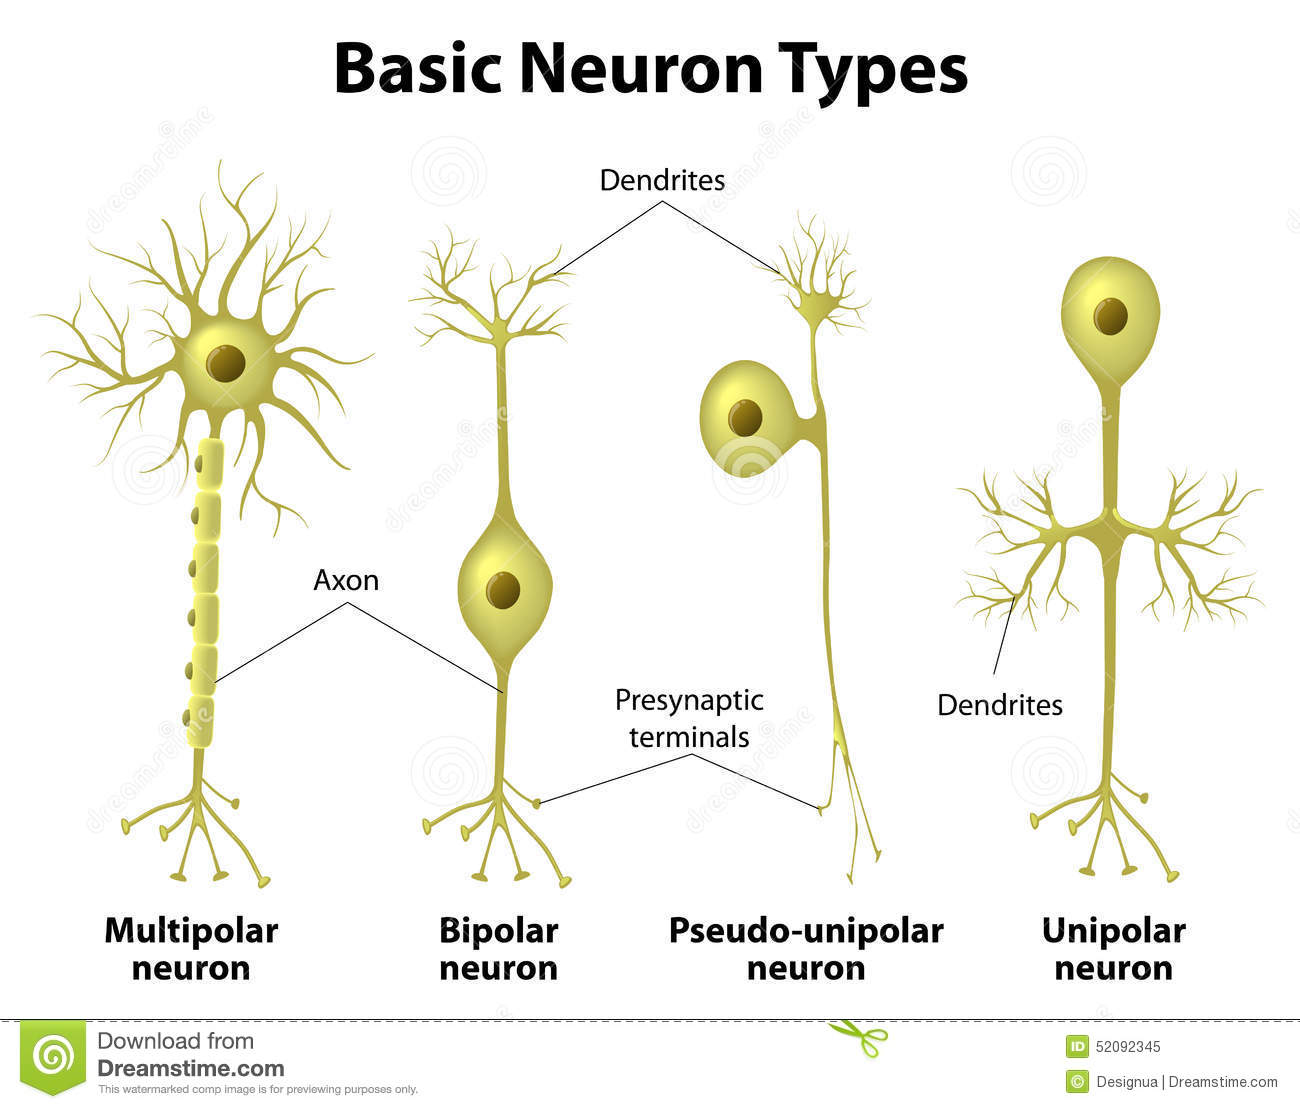 contrast unipolar bipolar and multipolar neurons structually Unipolar neurons, as depicted above, have an axon going towards and from the soma this is also known as having a single neurite these cells can branch to form axons or dendrites depending on need in its environment.